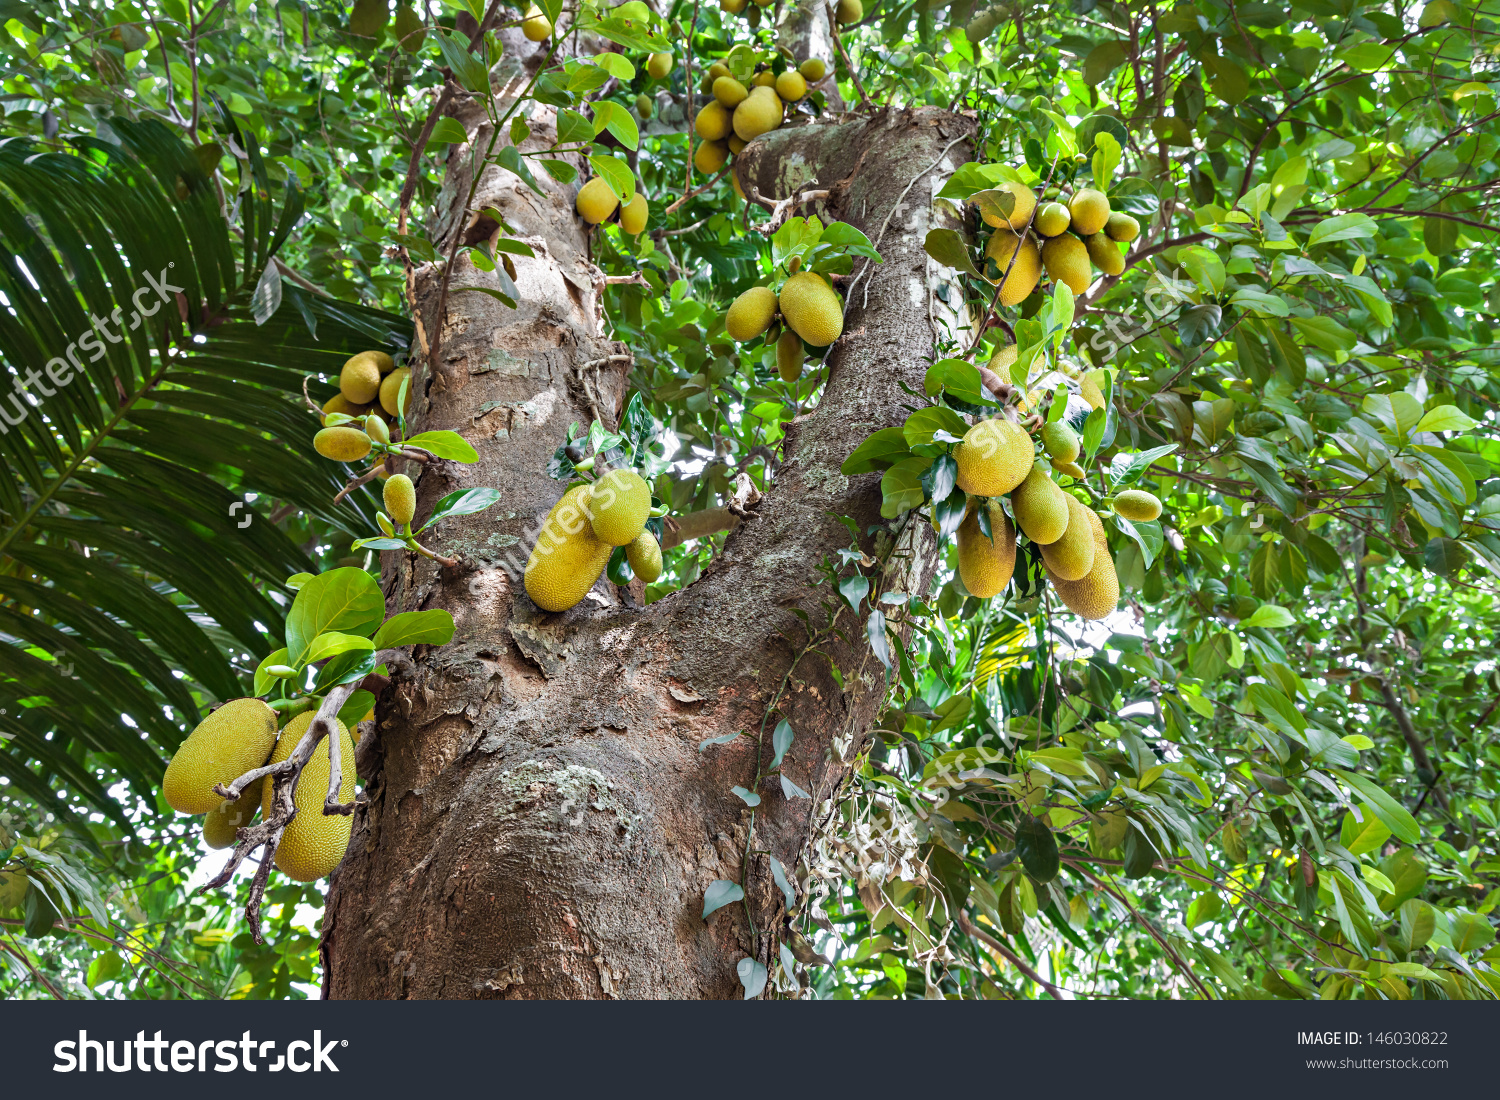 Very Big Jack Fruit Tree Fruits Stock Photo 146030822.